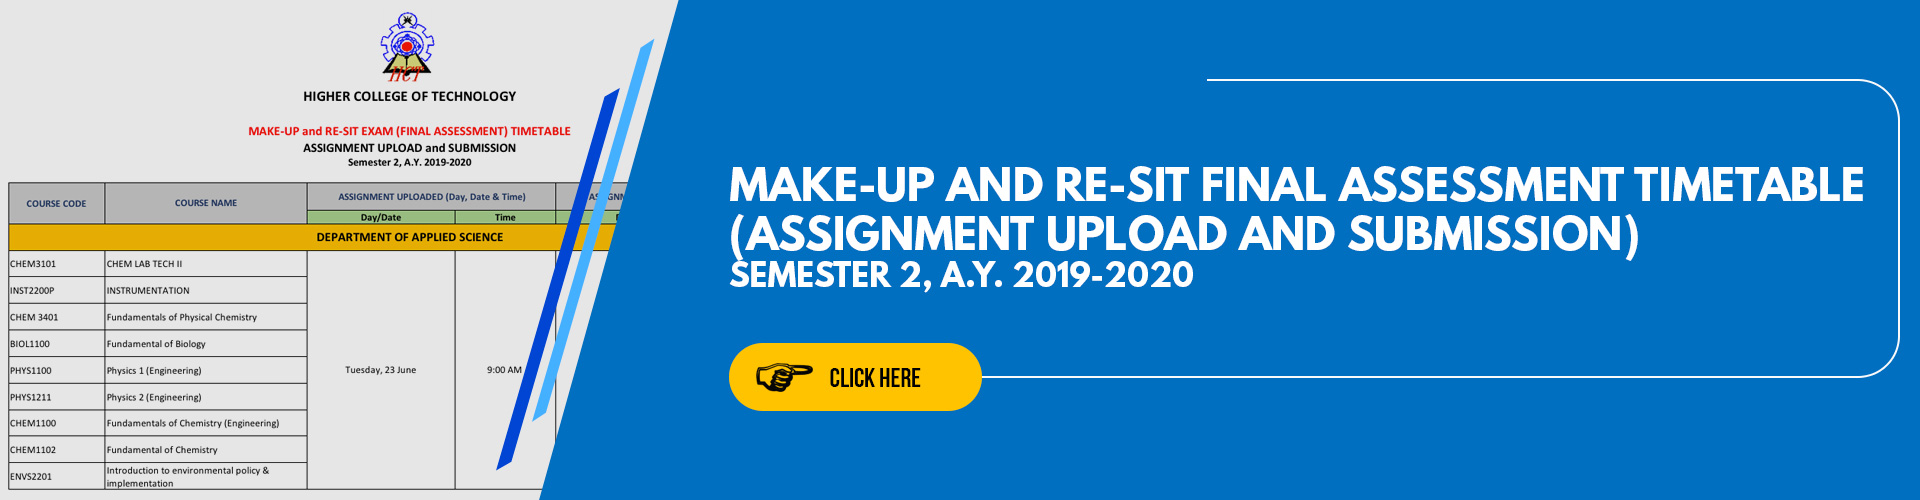 Make-up and Re-Sit Final Assessment Timetable (Assignment upload and submission) Semester 2, A.Y. 2019-2020